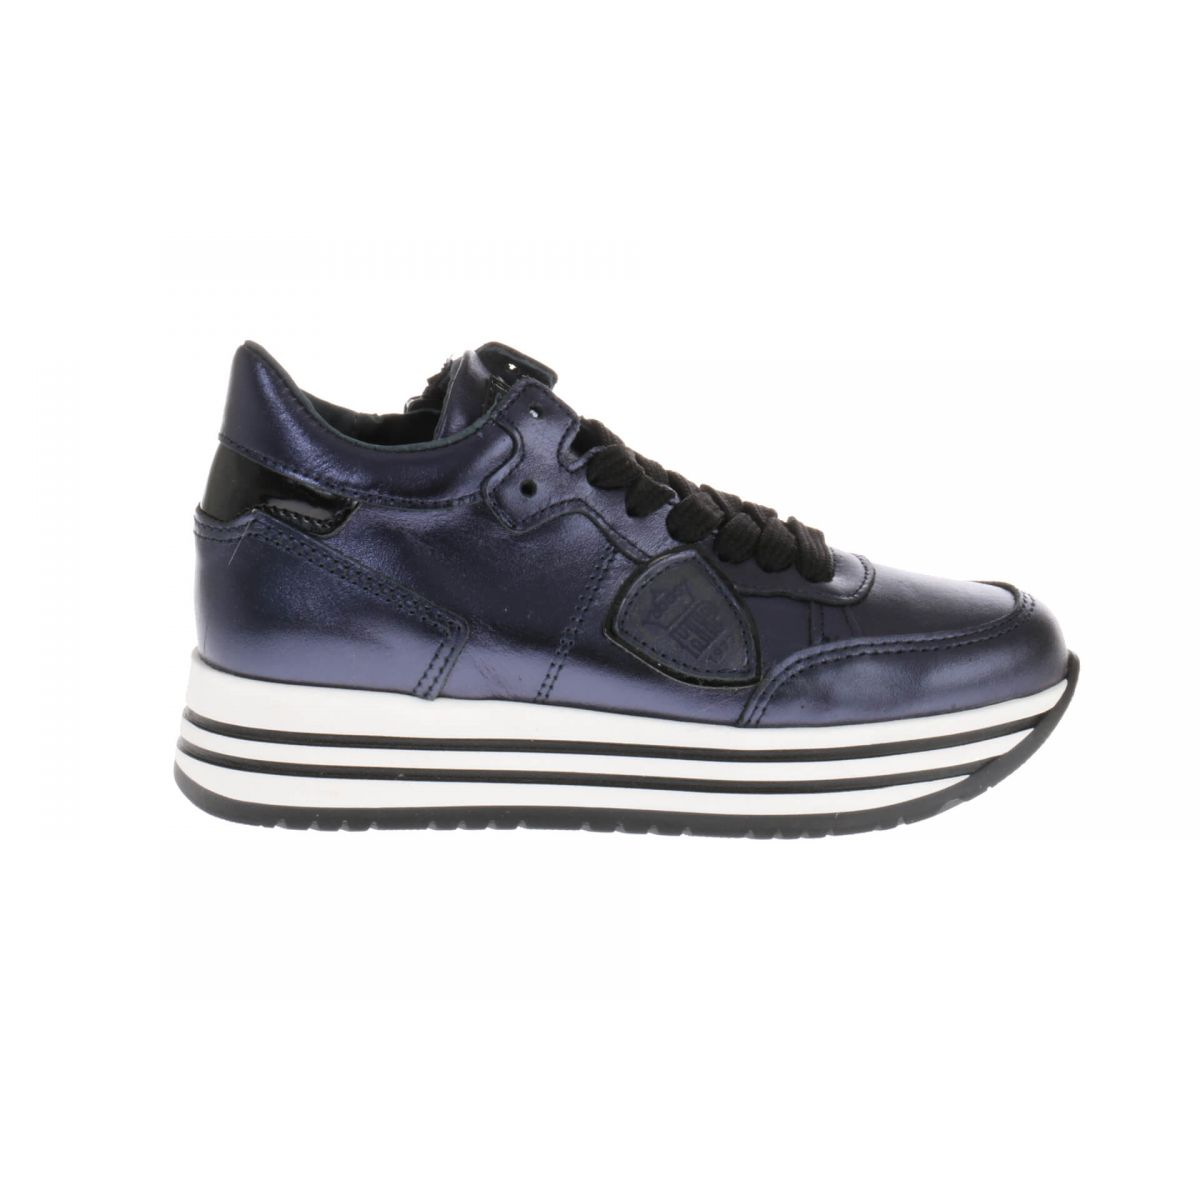 HIP H1151 Sneakers Blauw Metallic